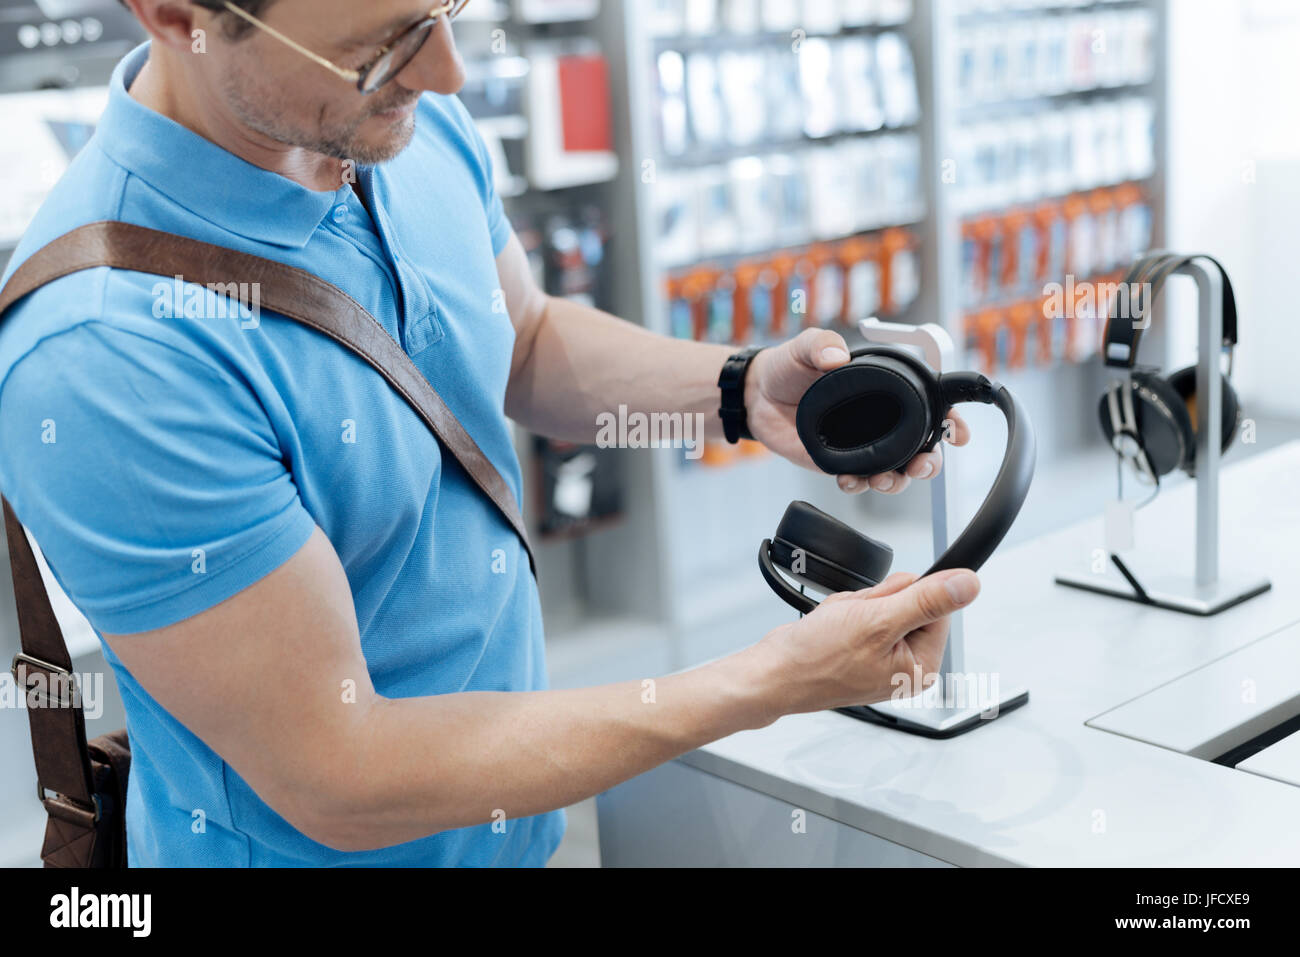 Wow they are amazing. Real music lover trying out a new pair of headphones while walking around and shopping at - Stock Image